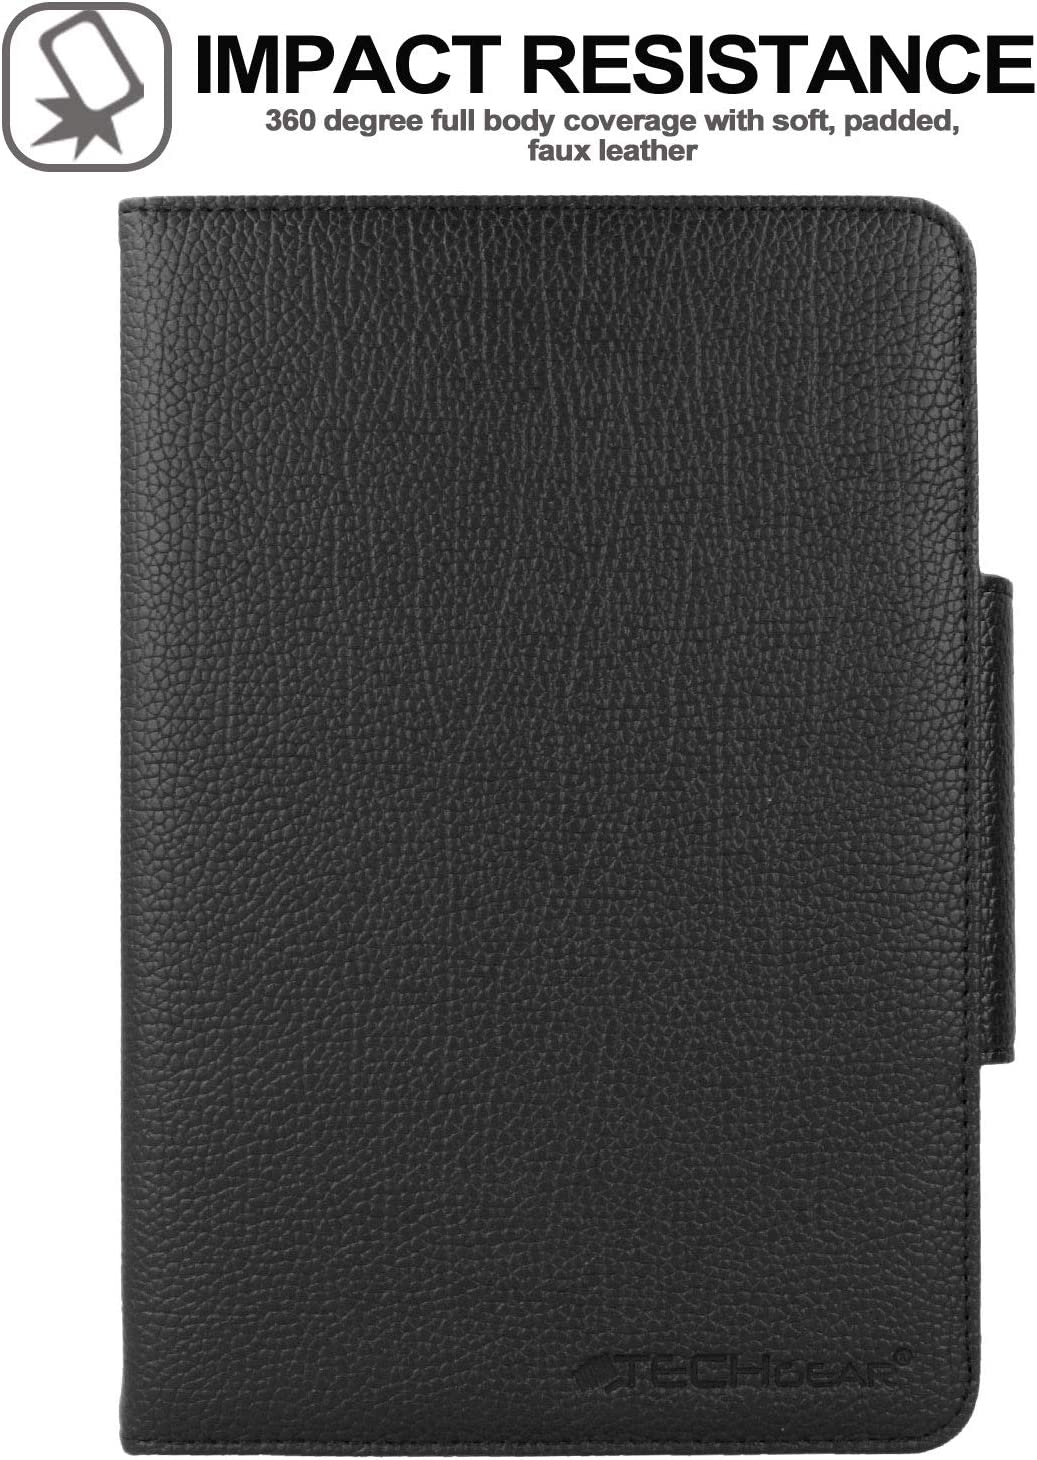 Fire 7 Keyboard Case TECHGEAR STRIKE FOLIO Case for  Fire 7 9th Generation // 2019 Black PU Leather Case with Detachable Bluetooth Wireless UK QWERTY Keyboard and Stand